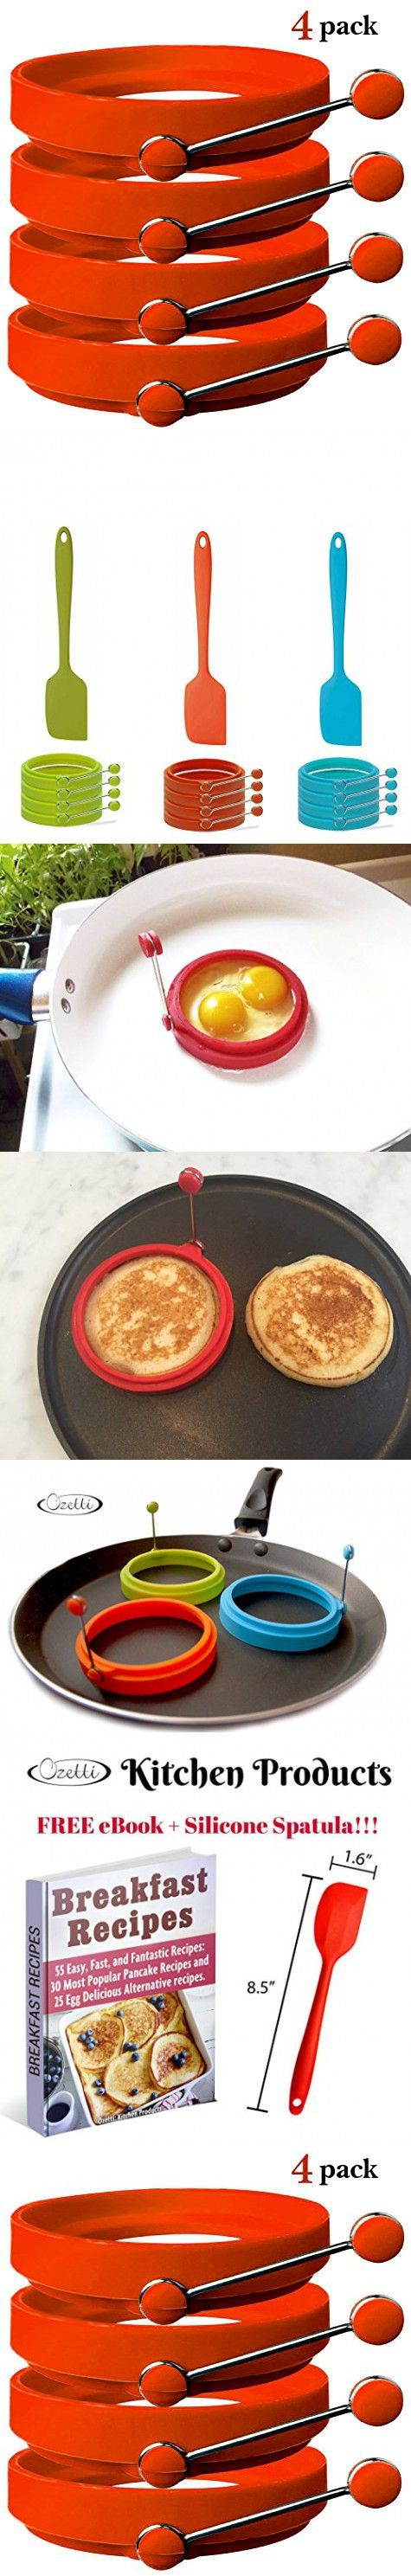 Silicone Egg Rings by Ozetti - Free Spatula and Recipes Included - Professional Non-Stick BPA-Free Silicone - Best Egg Cooking Rings and Pancake Molds - Set of 4 Egg Rings - RED